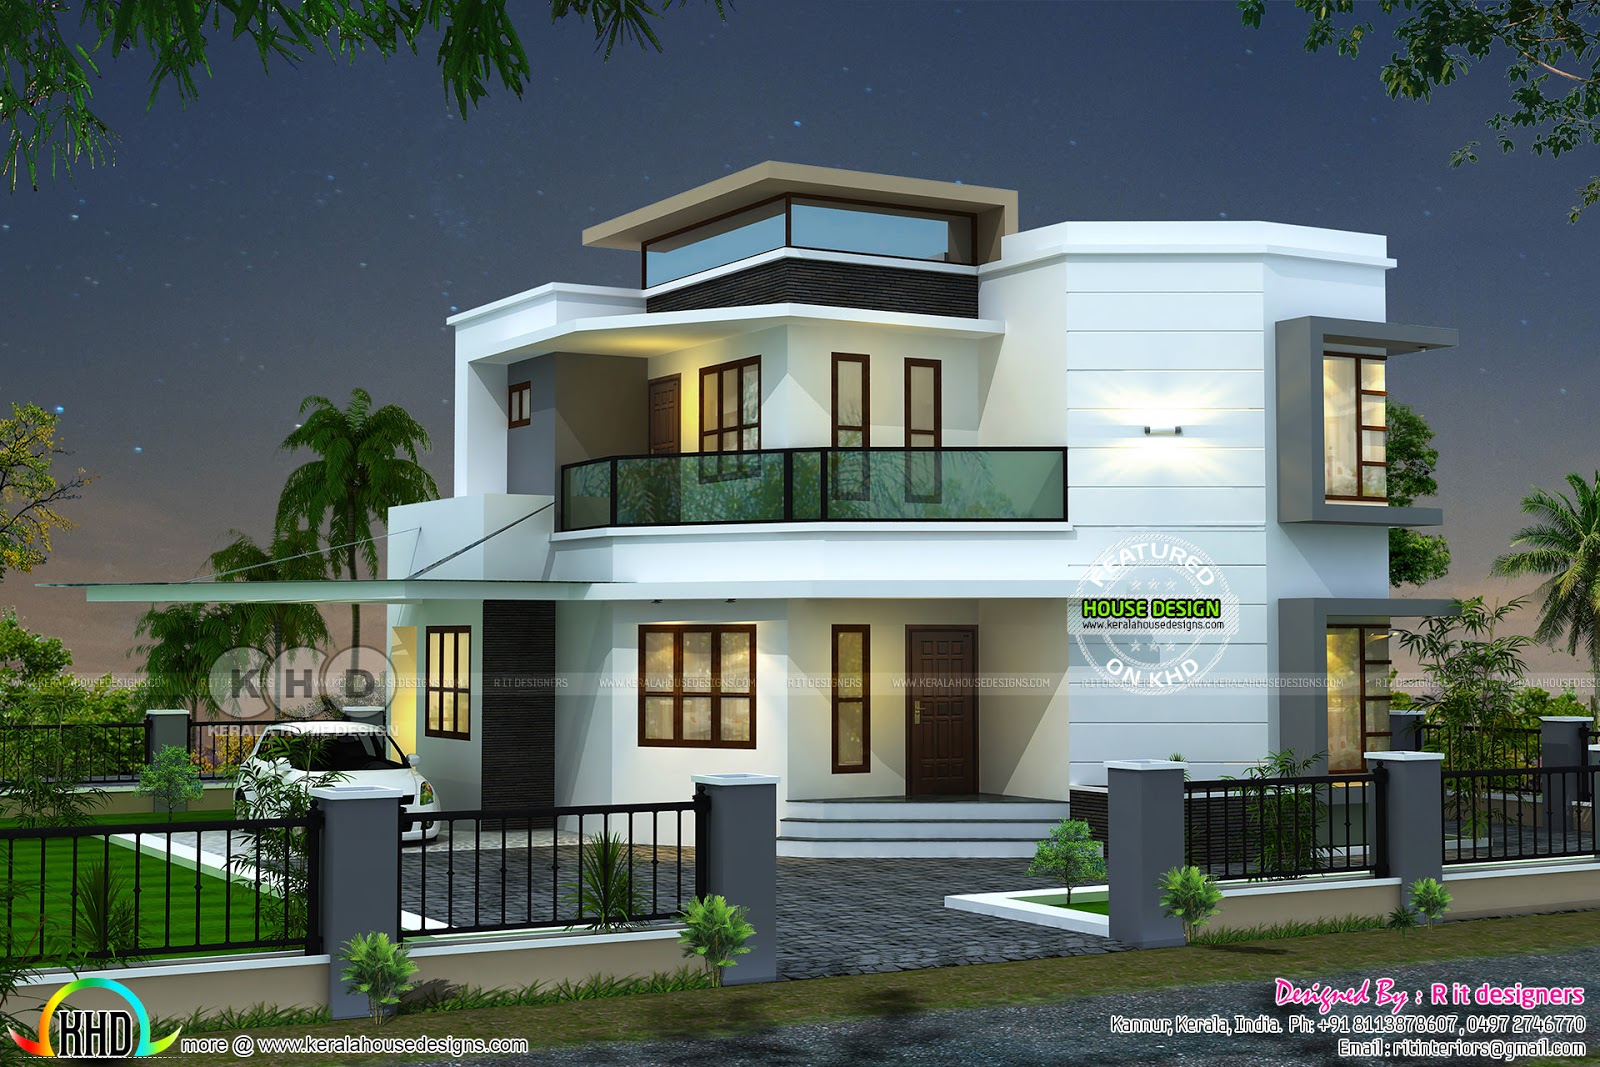 3 Bedroom Modern House Plan Kerala Home Design And Floor Plans intended for 15 Genius Ideas How to Upgrade 3 Bedroom Modern House Design